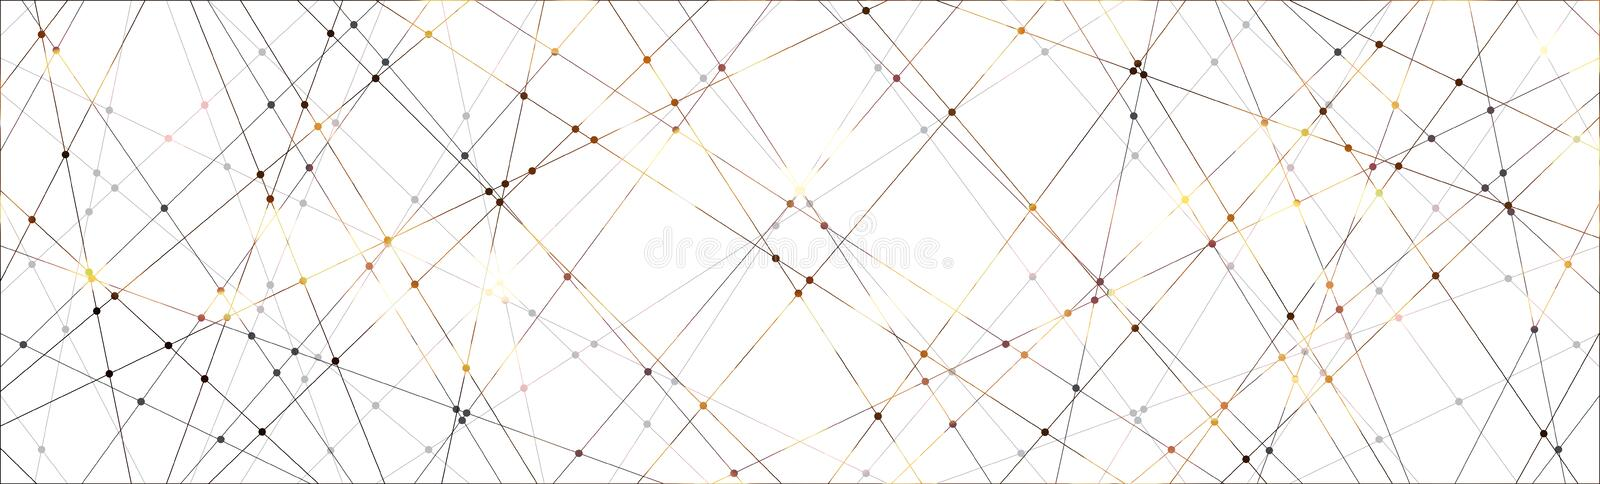 Line and dot pattern background. stock image